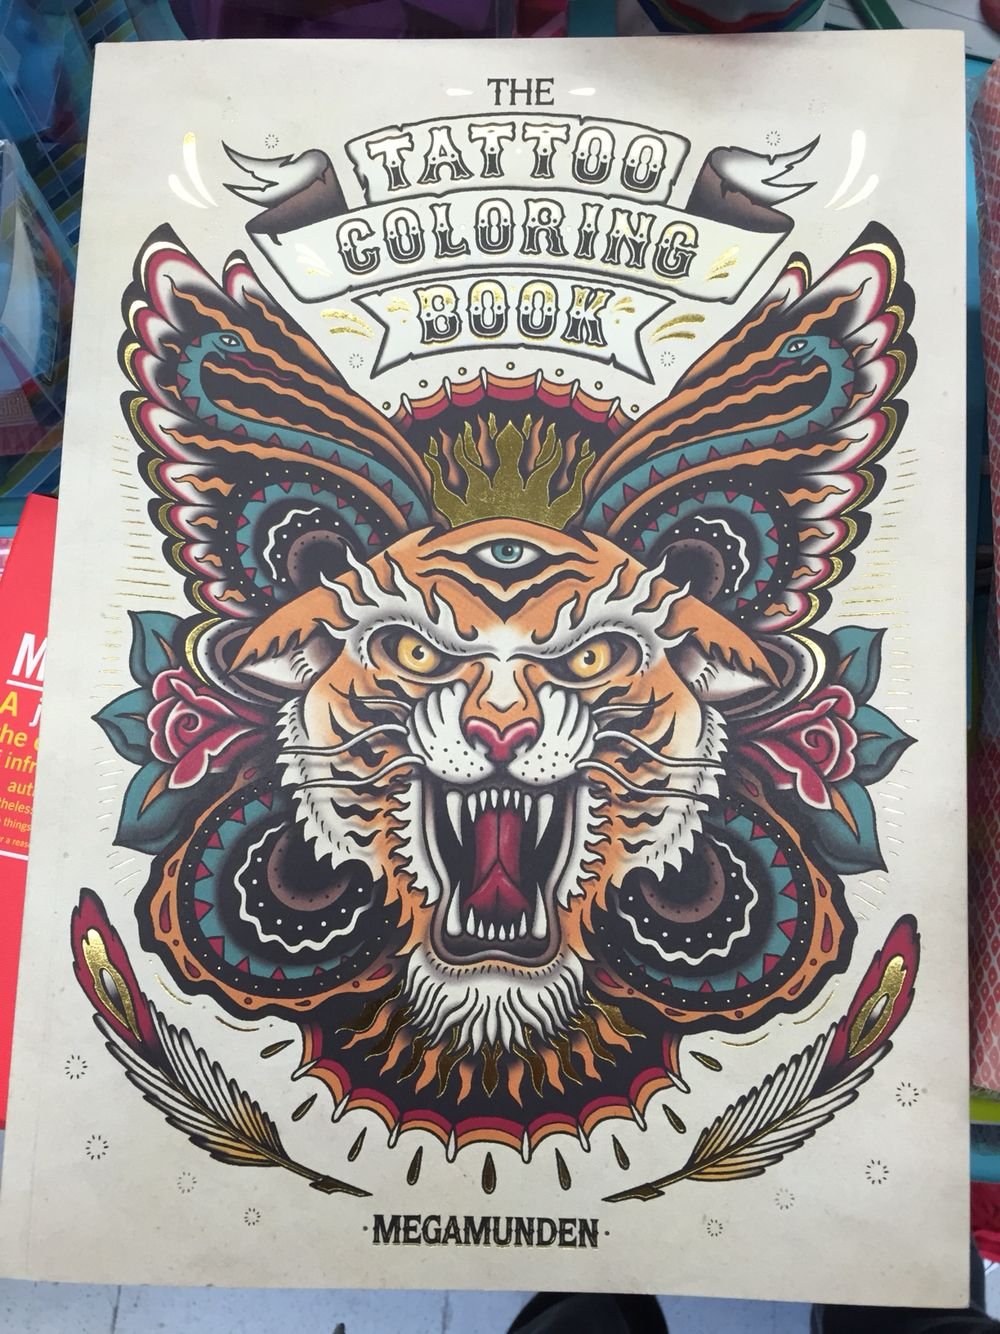 The tattoo coloring book megamunden - Tattoo Coloring Book See Inside Http Www Megamunden Com